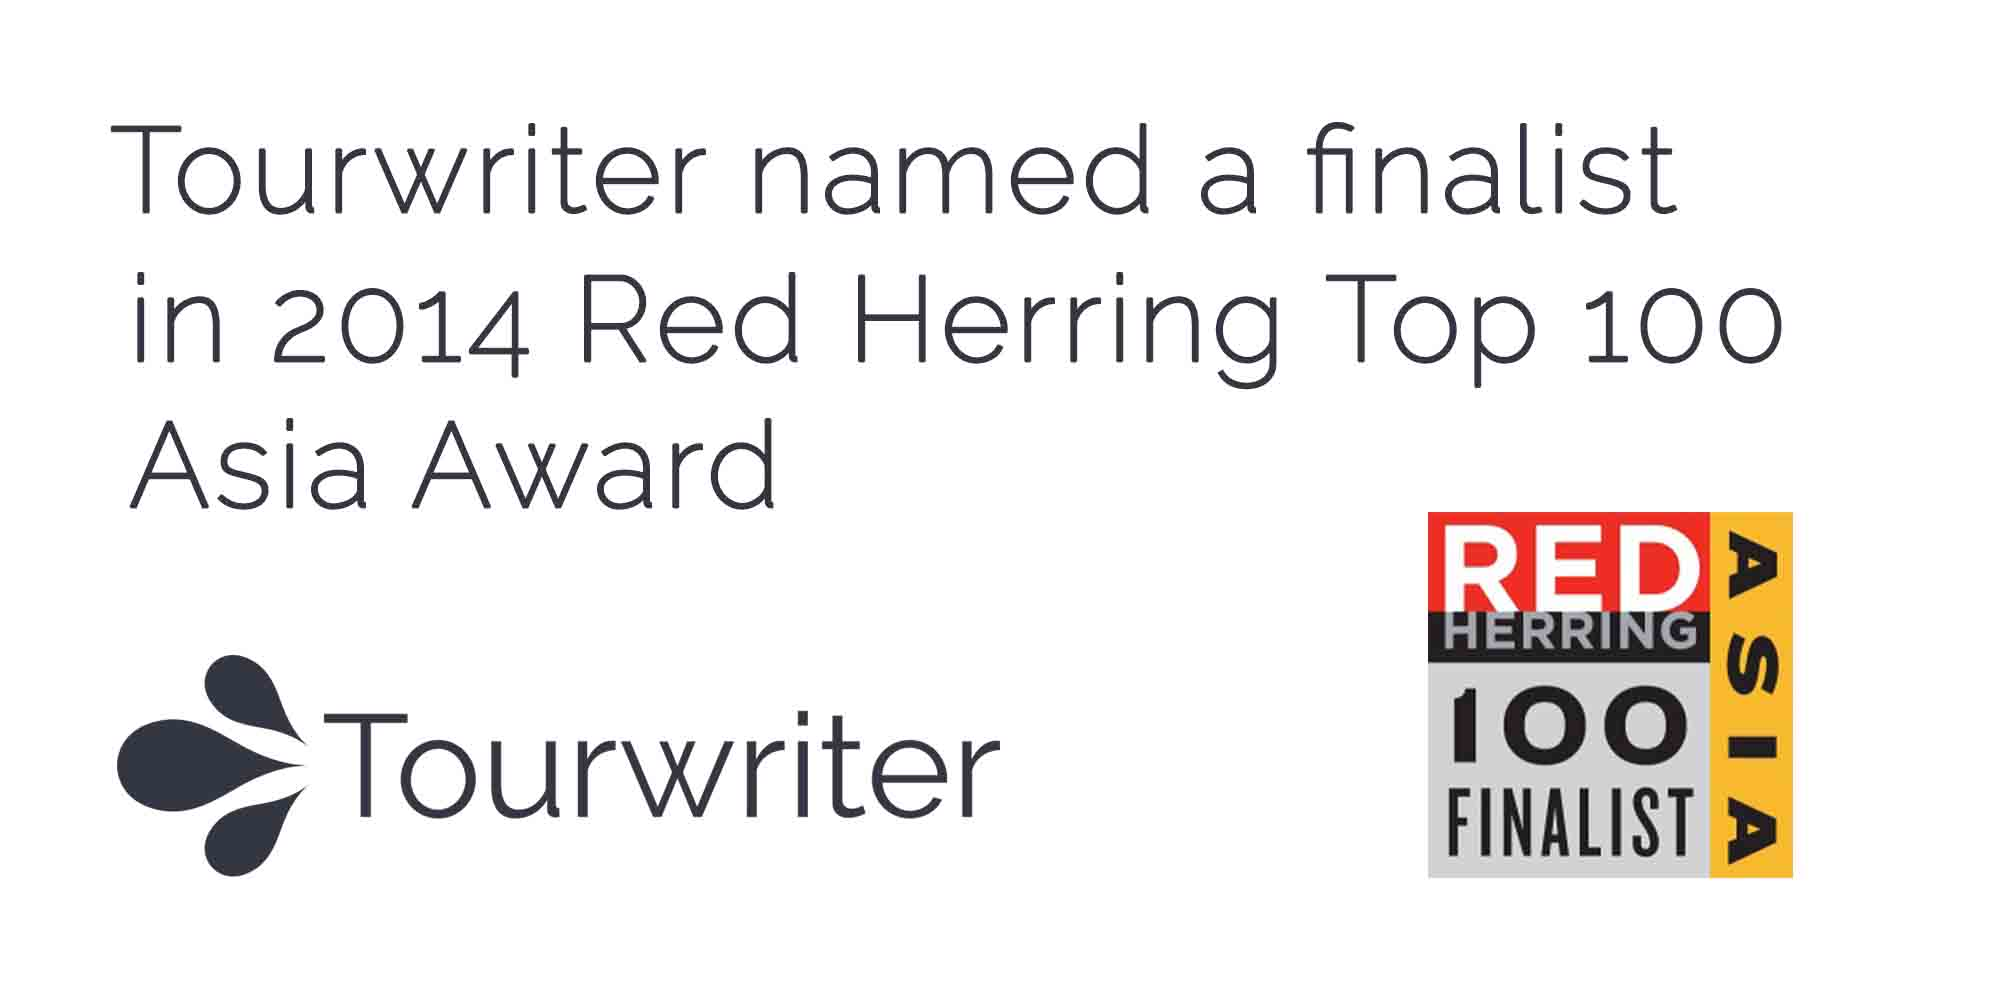 Tourwriter named a finalist in Red Herring's Top 100 Asia Award